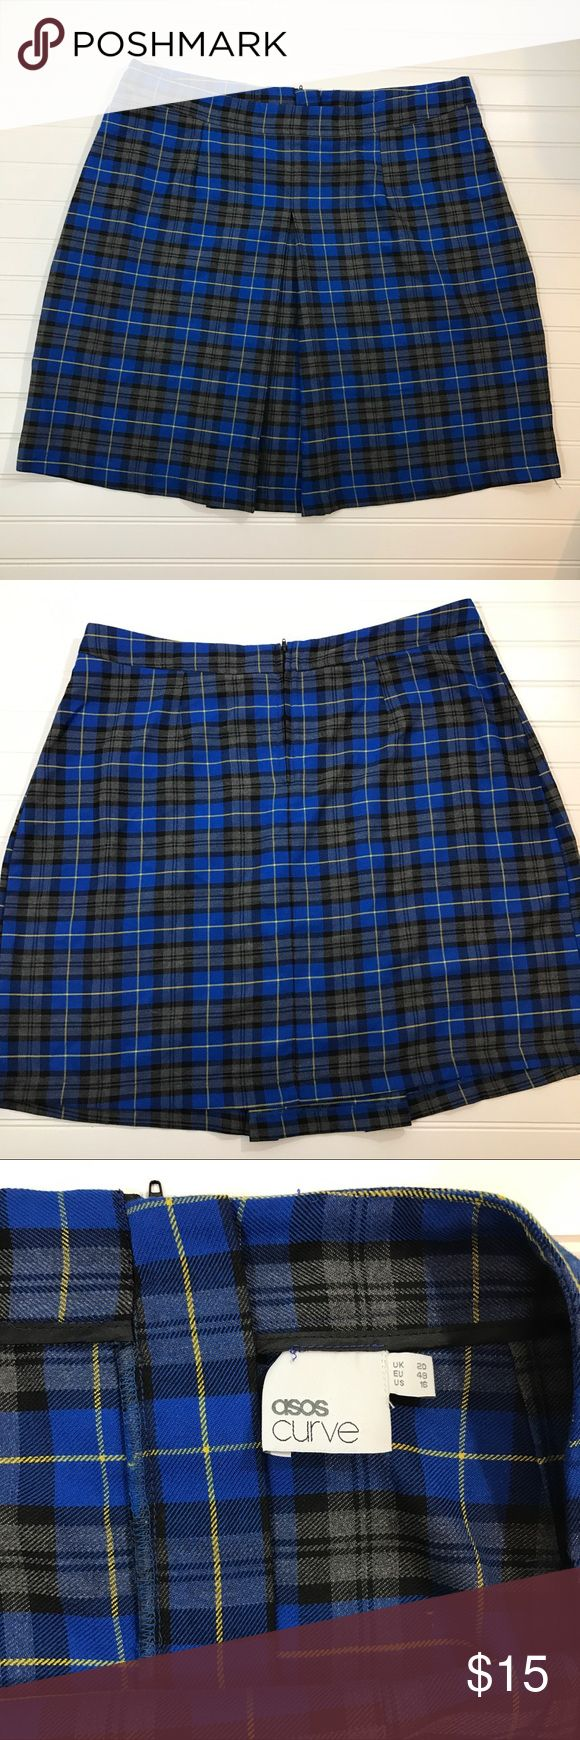 Asos Curve Blue Plaid Mini Skirt Size 16 Adorable blue, black, and yellow plaid mini skirt from Asos Curve, size 16. In like new condition. Features front pleat, and zipper in back. Measurements (taken flat): Waist-29 in, Hips-25 in, Length-21 in ASOS Curve Skirts Mini